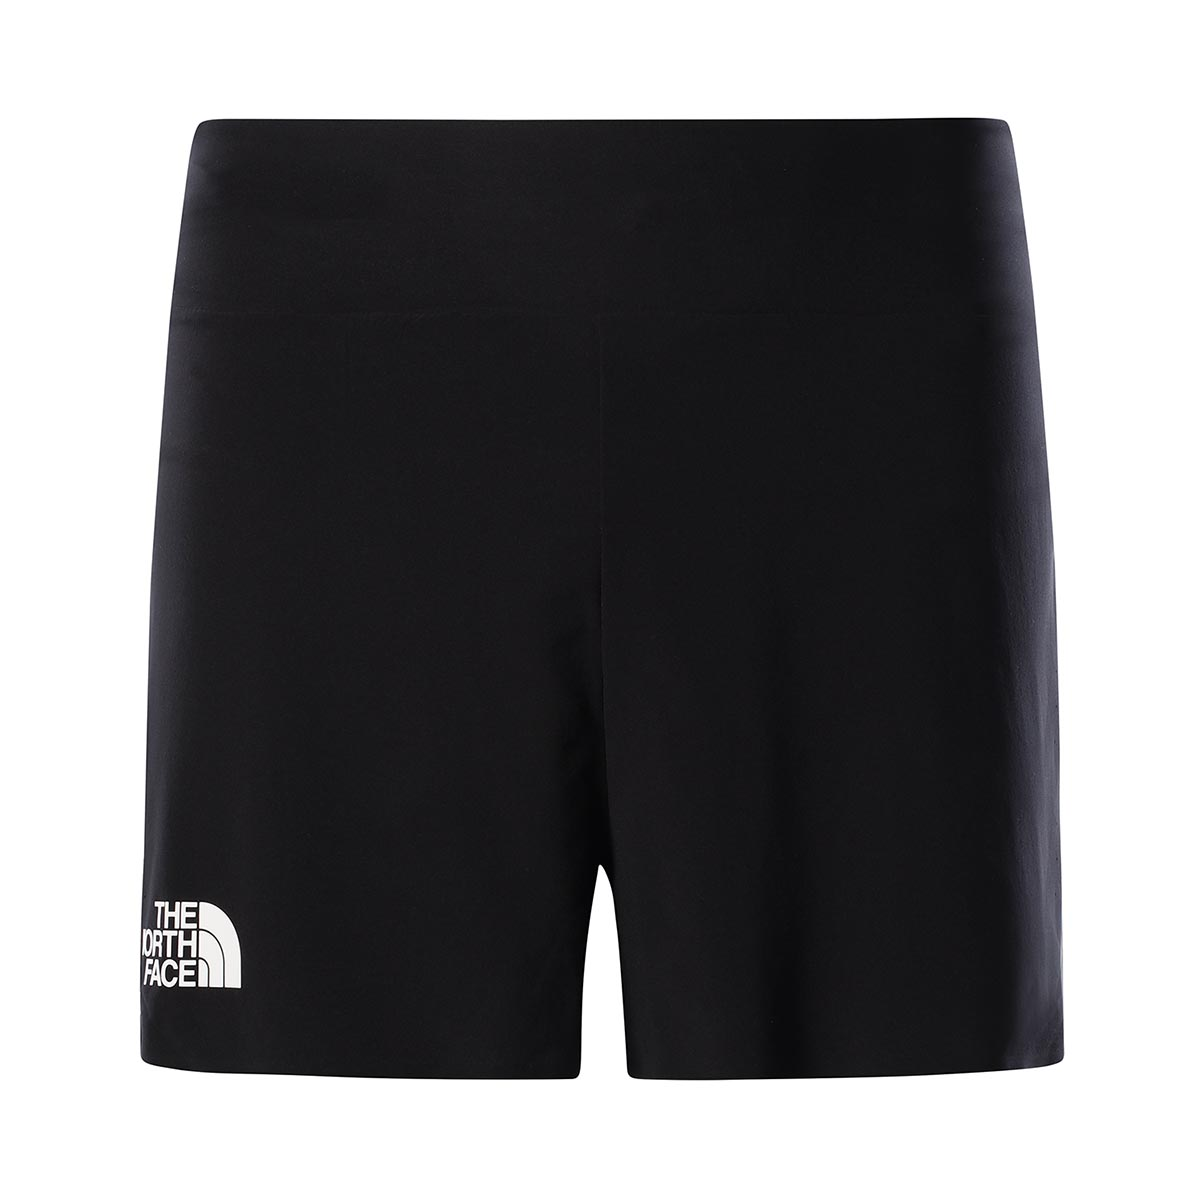 THE NORTH FACE - FLIGHT SERIES STRIDELIGHT SHORTS